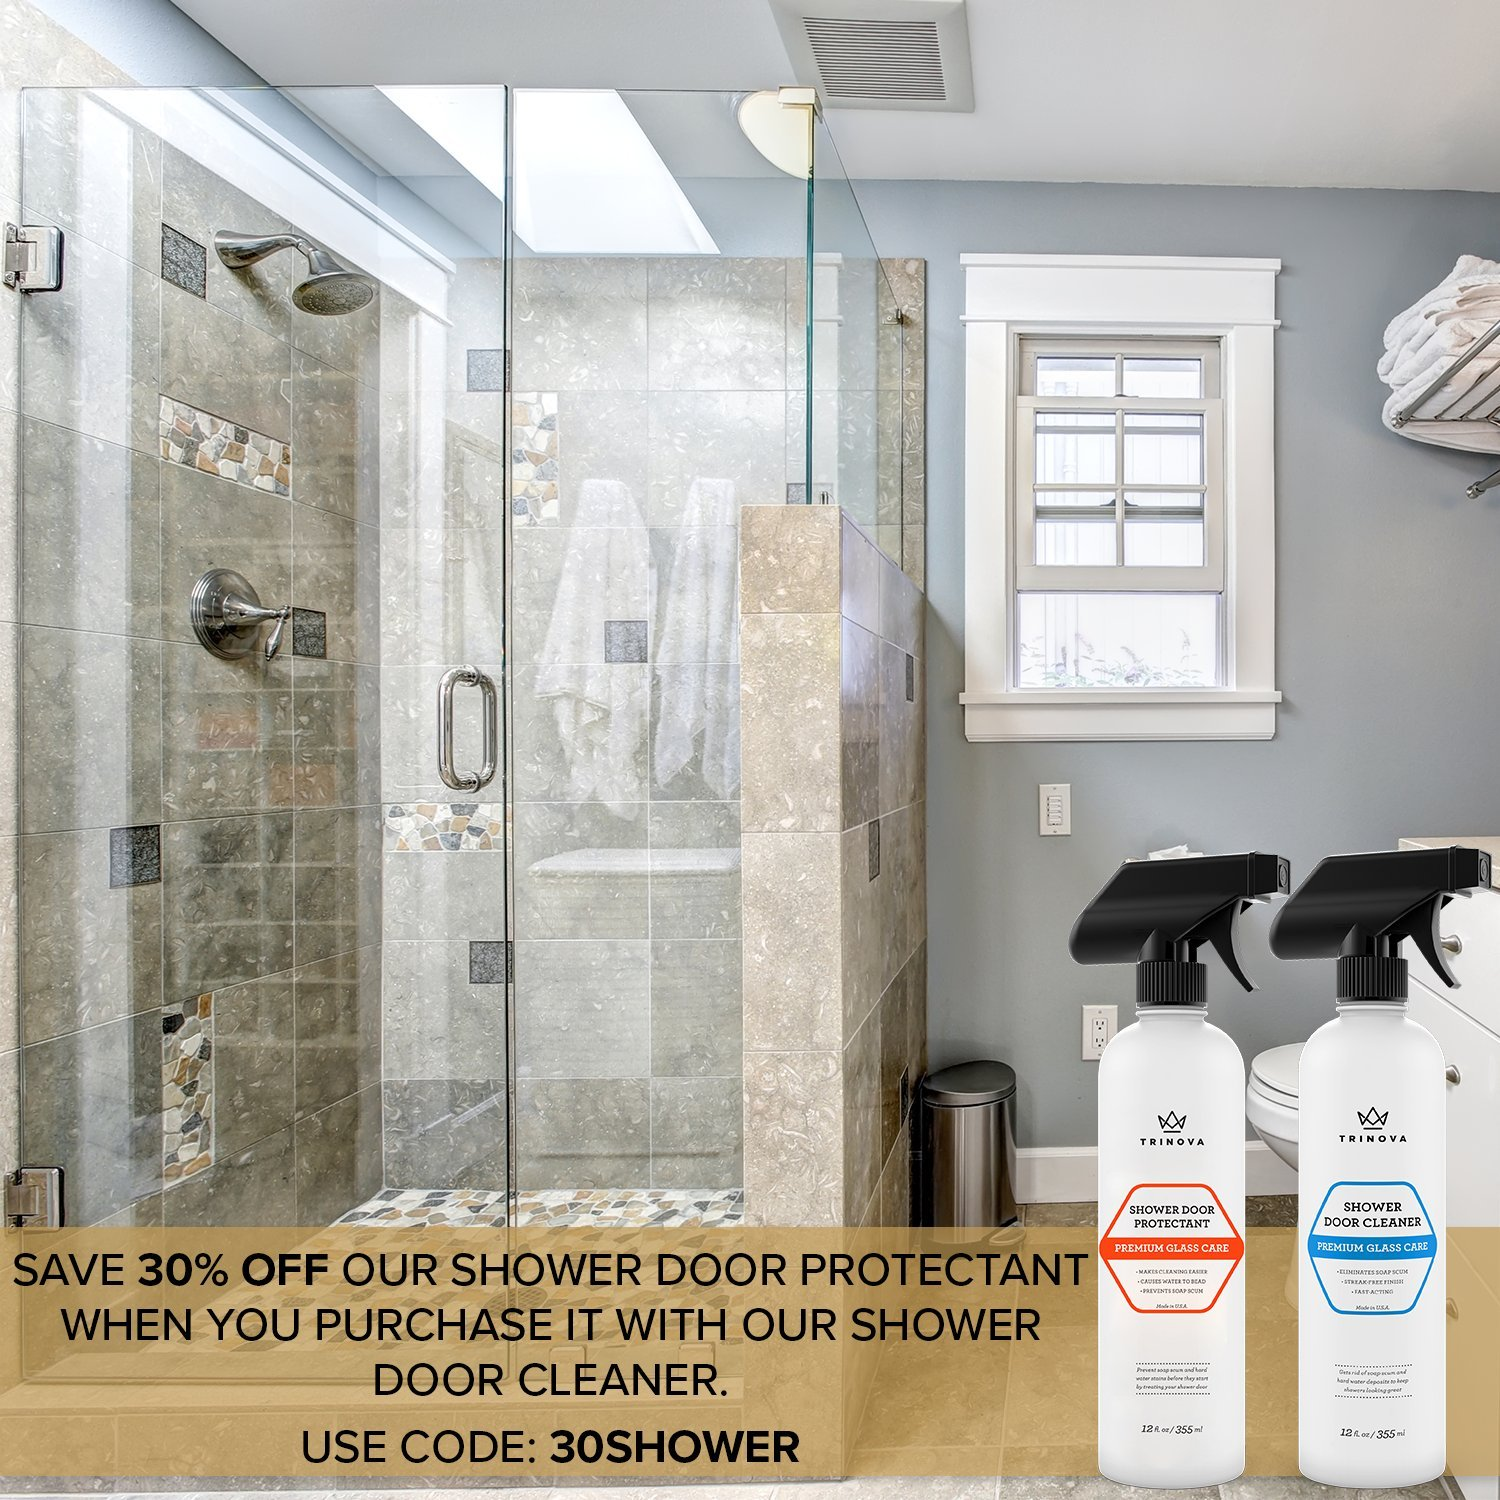 Amazon Shower Door Cleaner Removes Soap Scum Mildew And Mold